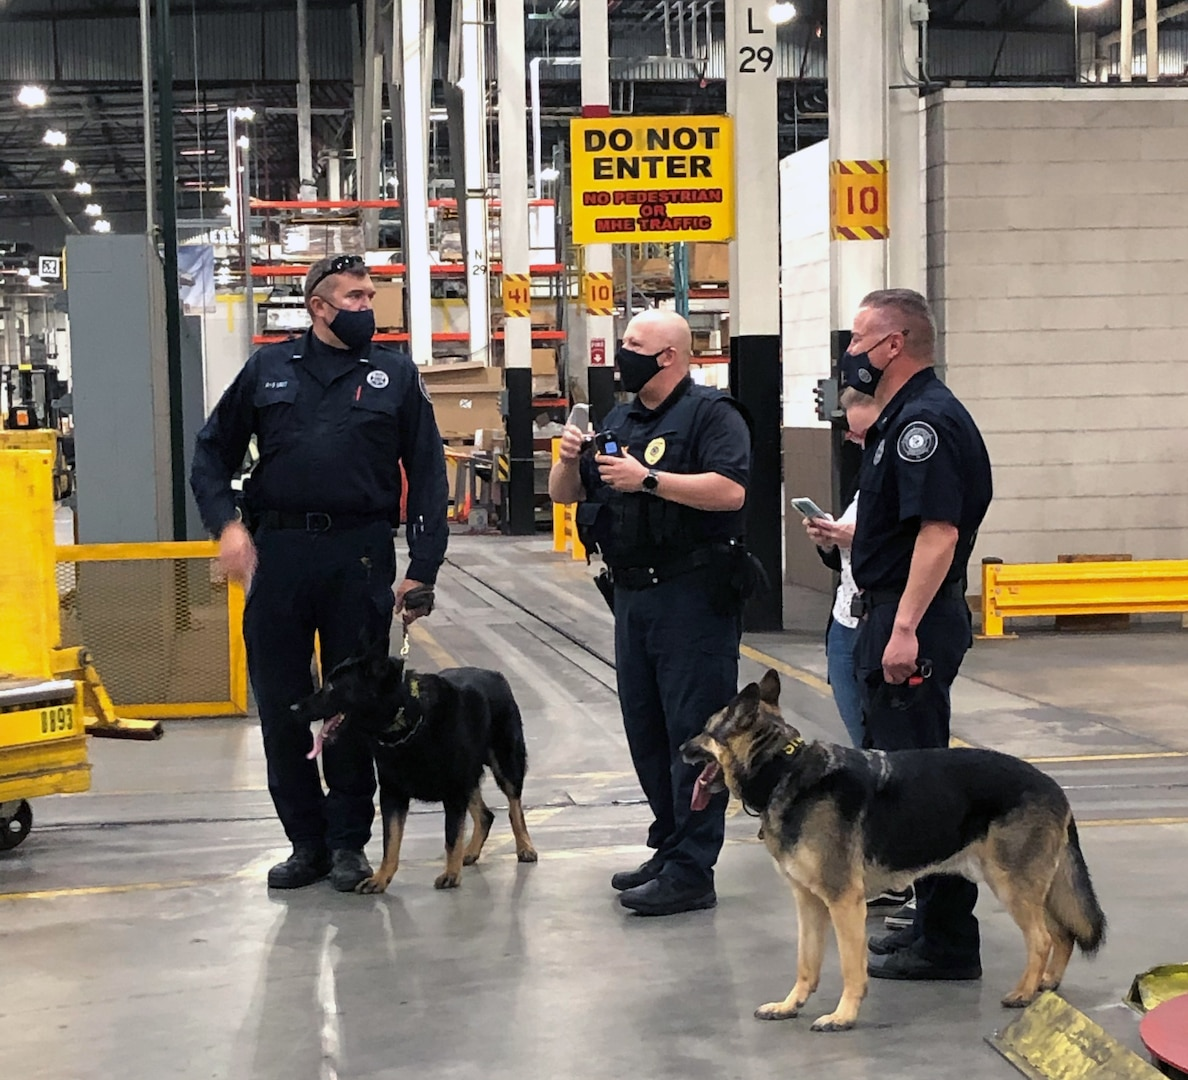 DLA police and local counterparts conduct canine focused force protection measure at DLA Distribution Susquehanna